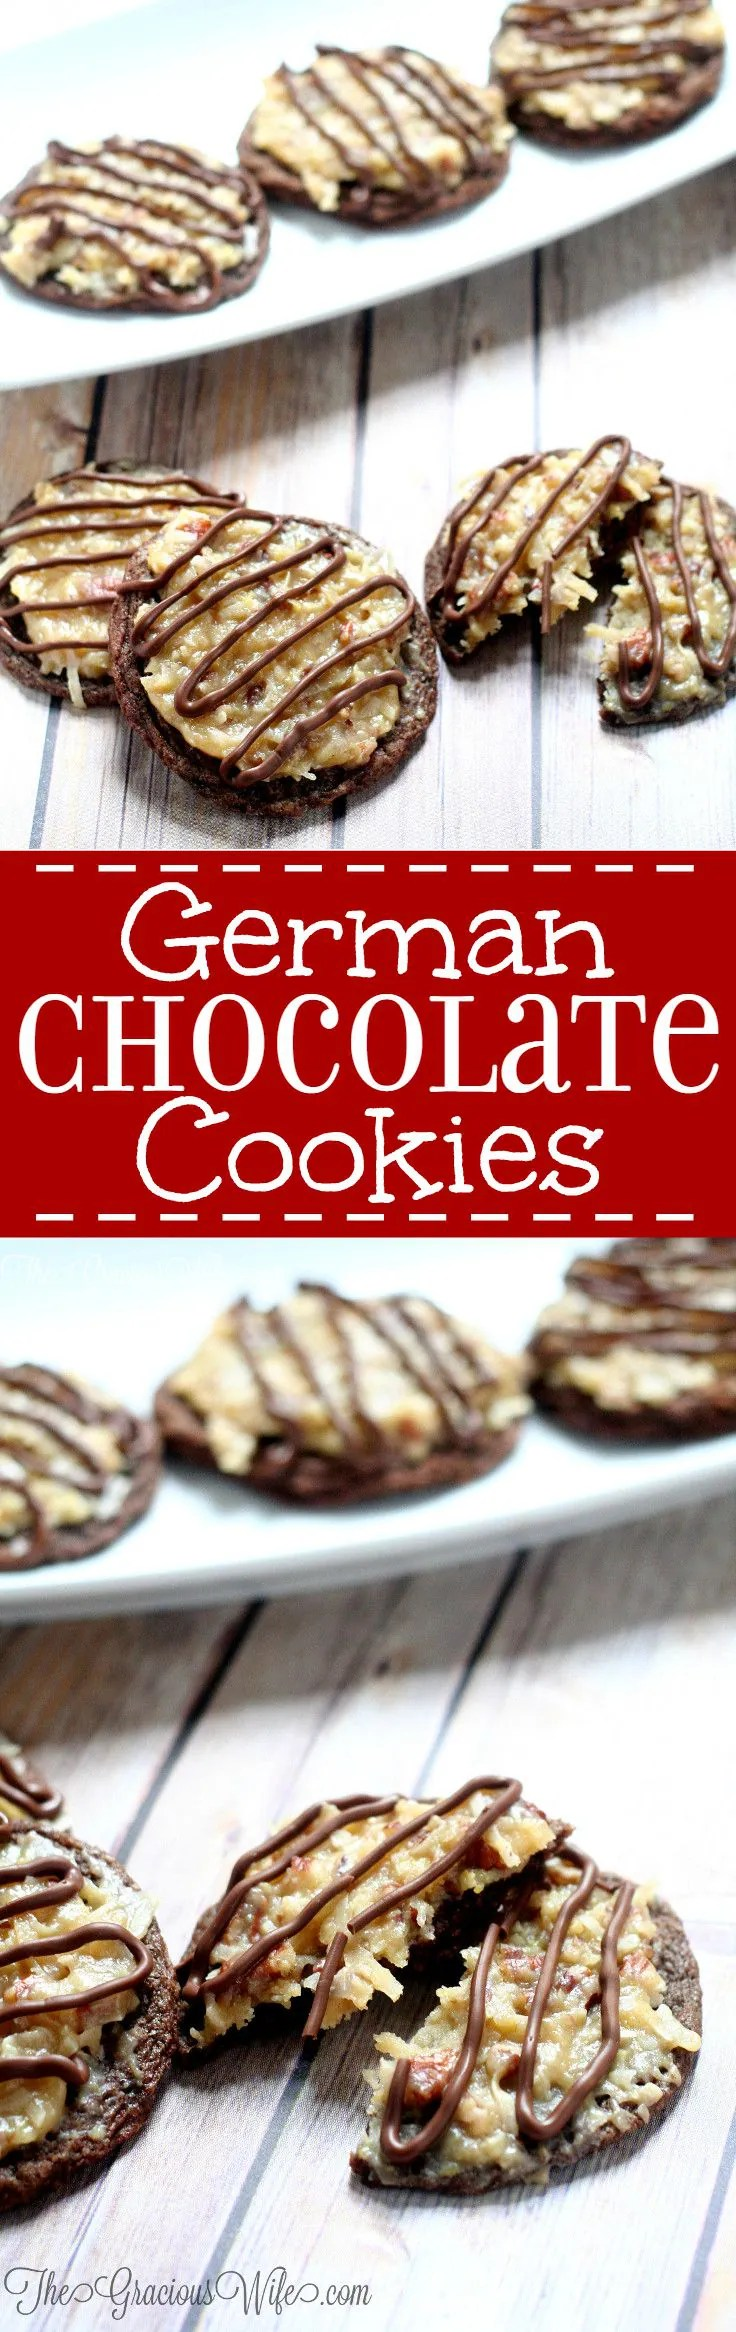 Fancy German Chocolate Cake Cookies Recipe A Delicious Combination German Chocolate Cake Cookies Wife Anddecadent Chocolate Cookies nice food German Chocolate Cookies